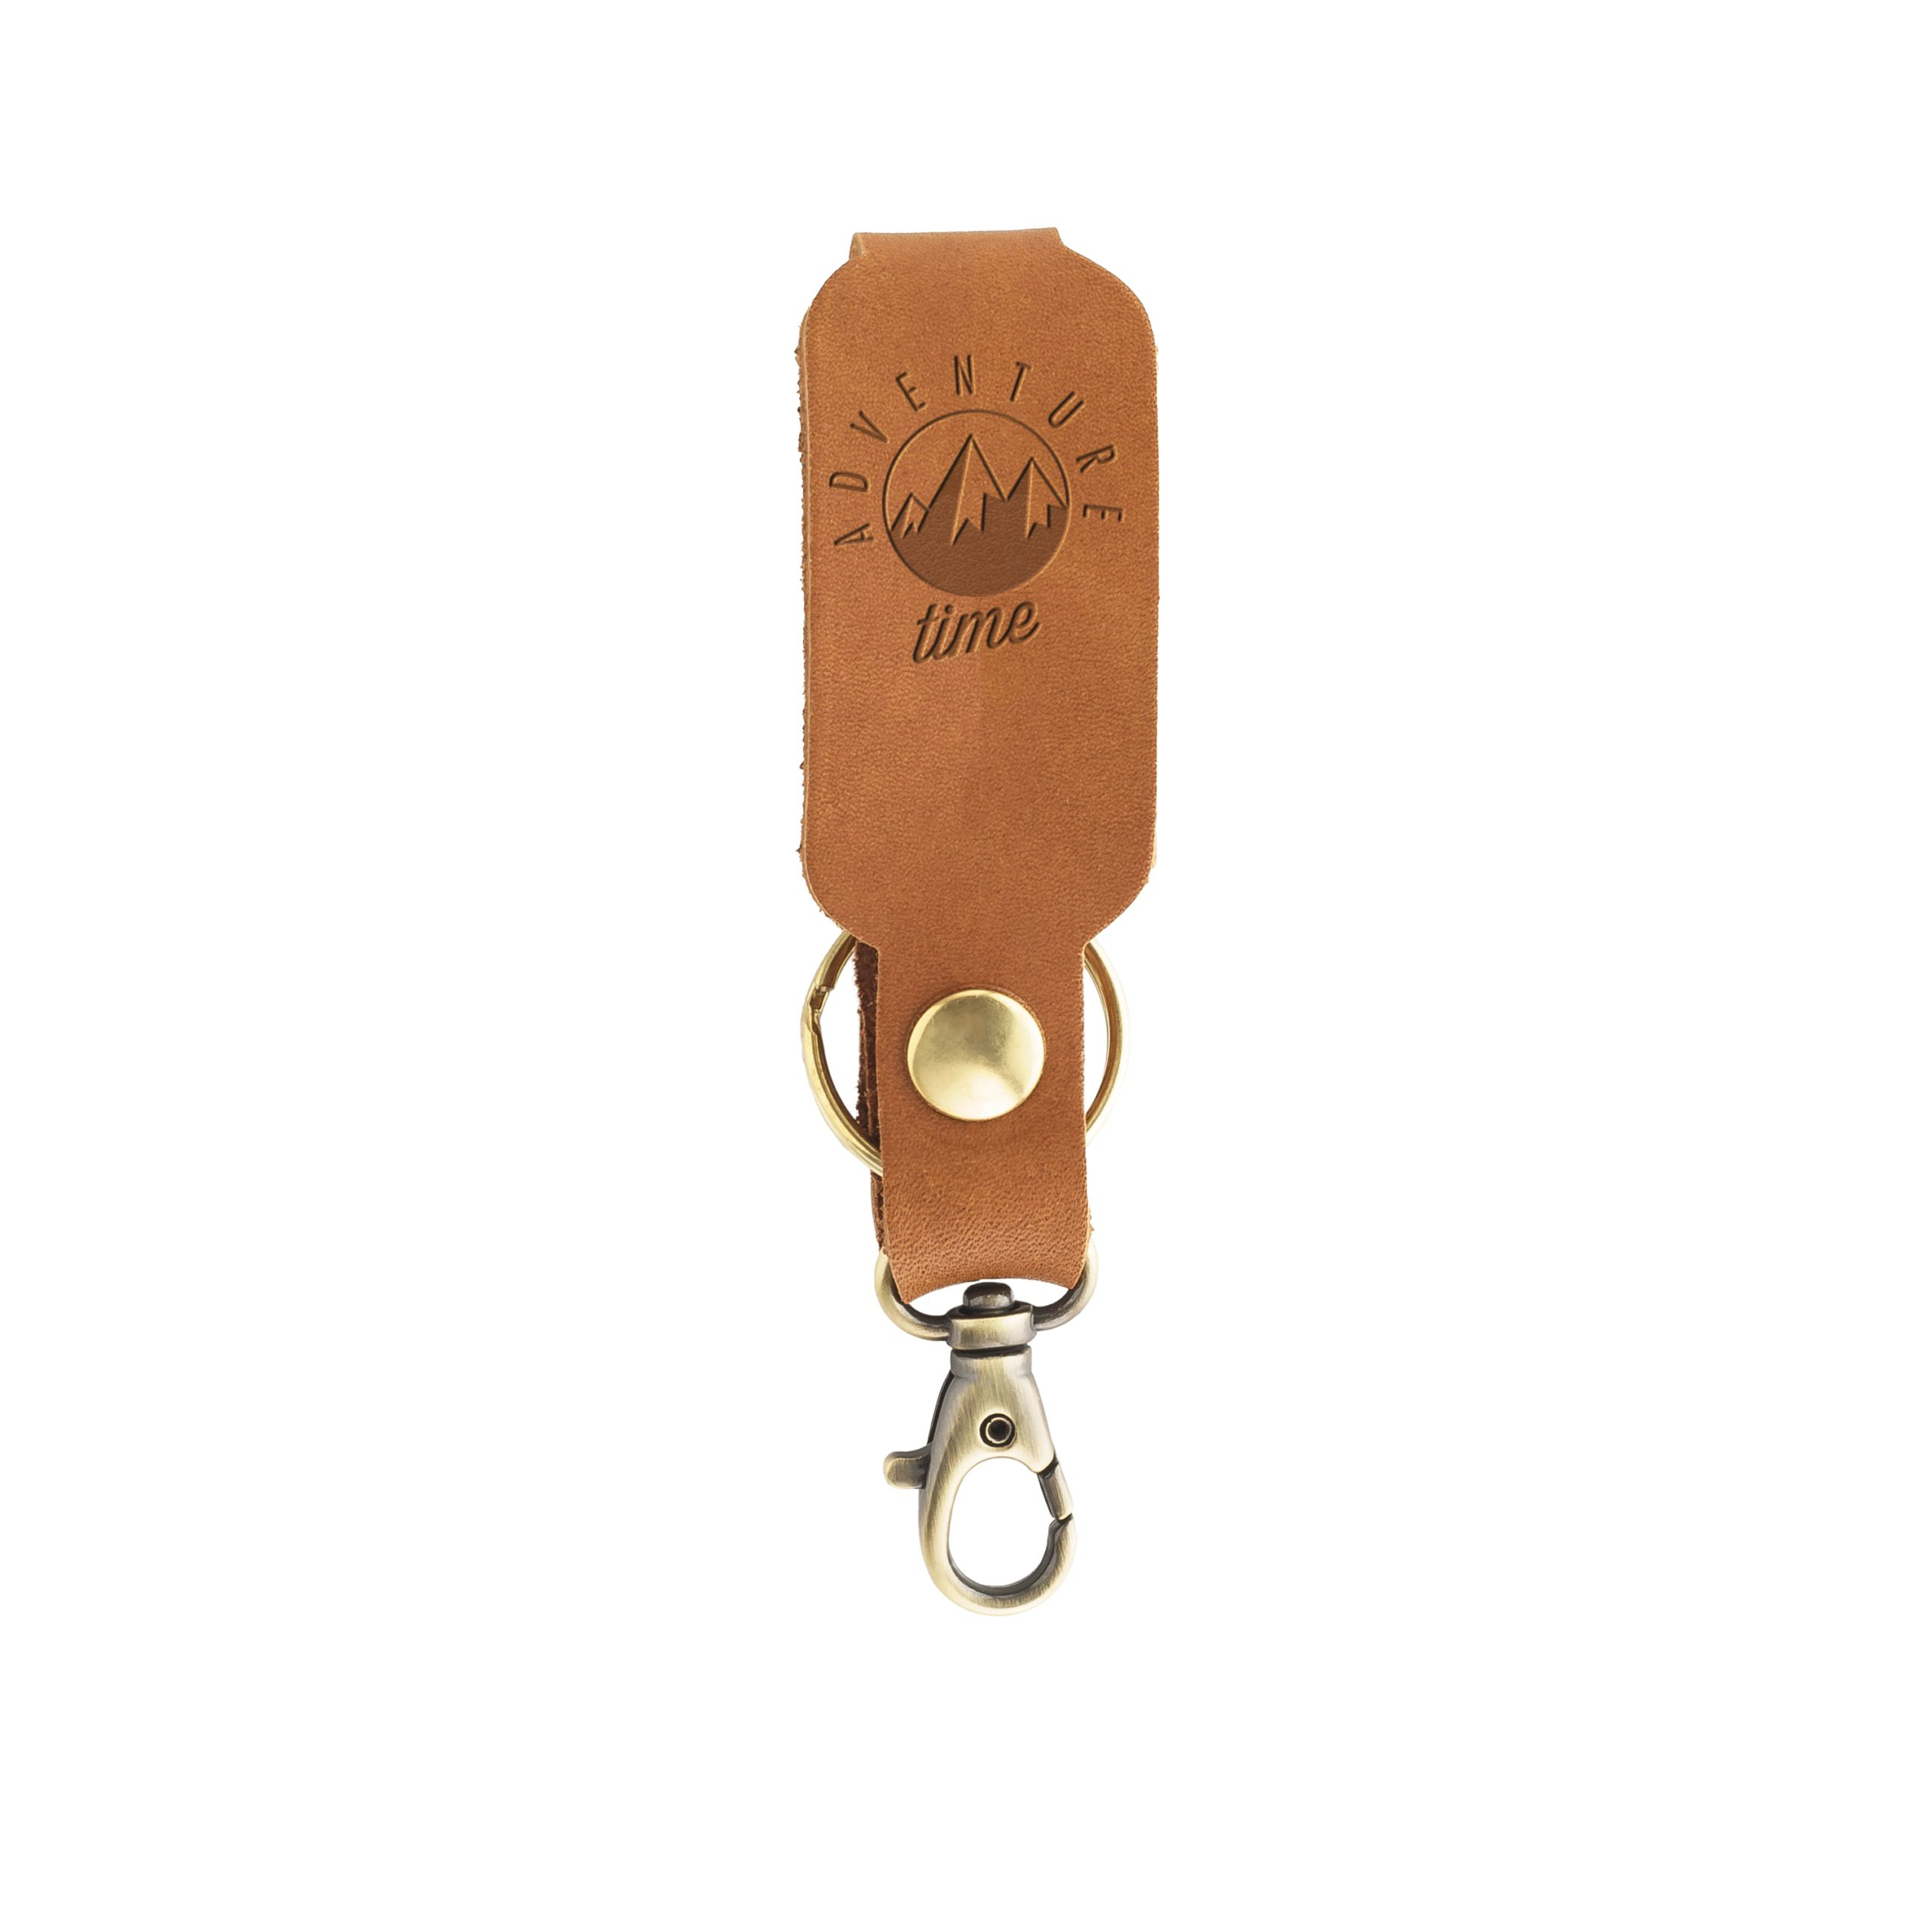 LOGO Leather Keychain: Adventure Time